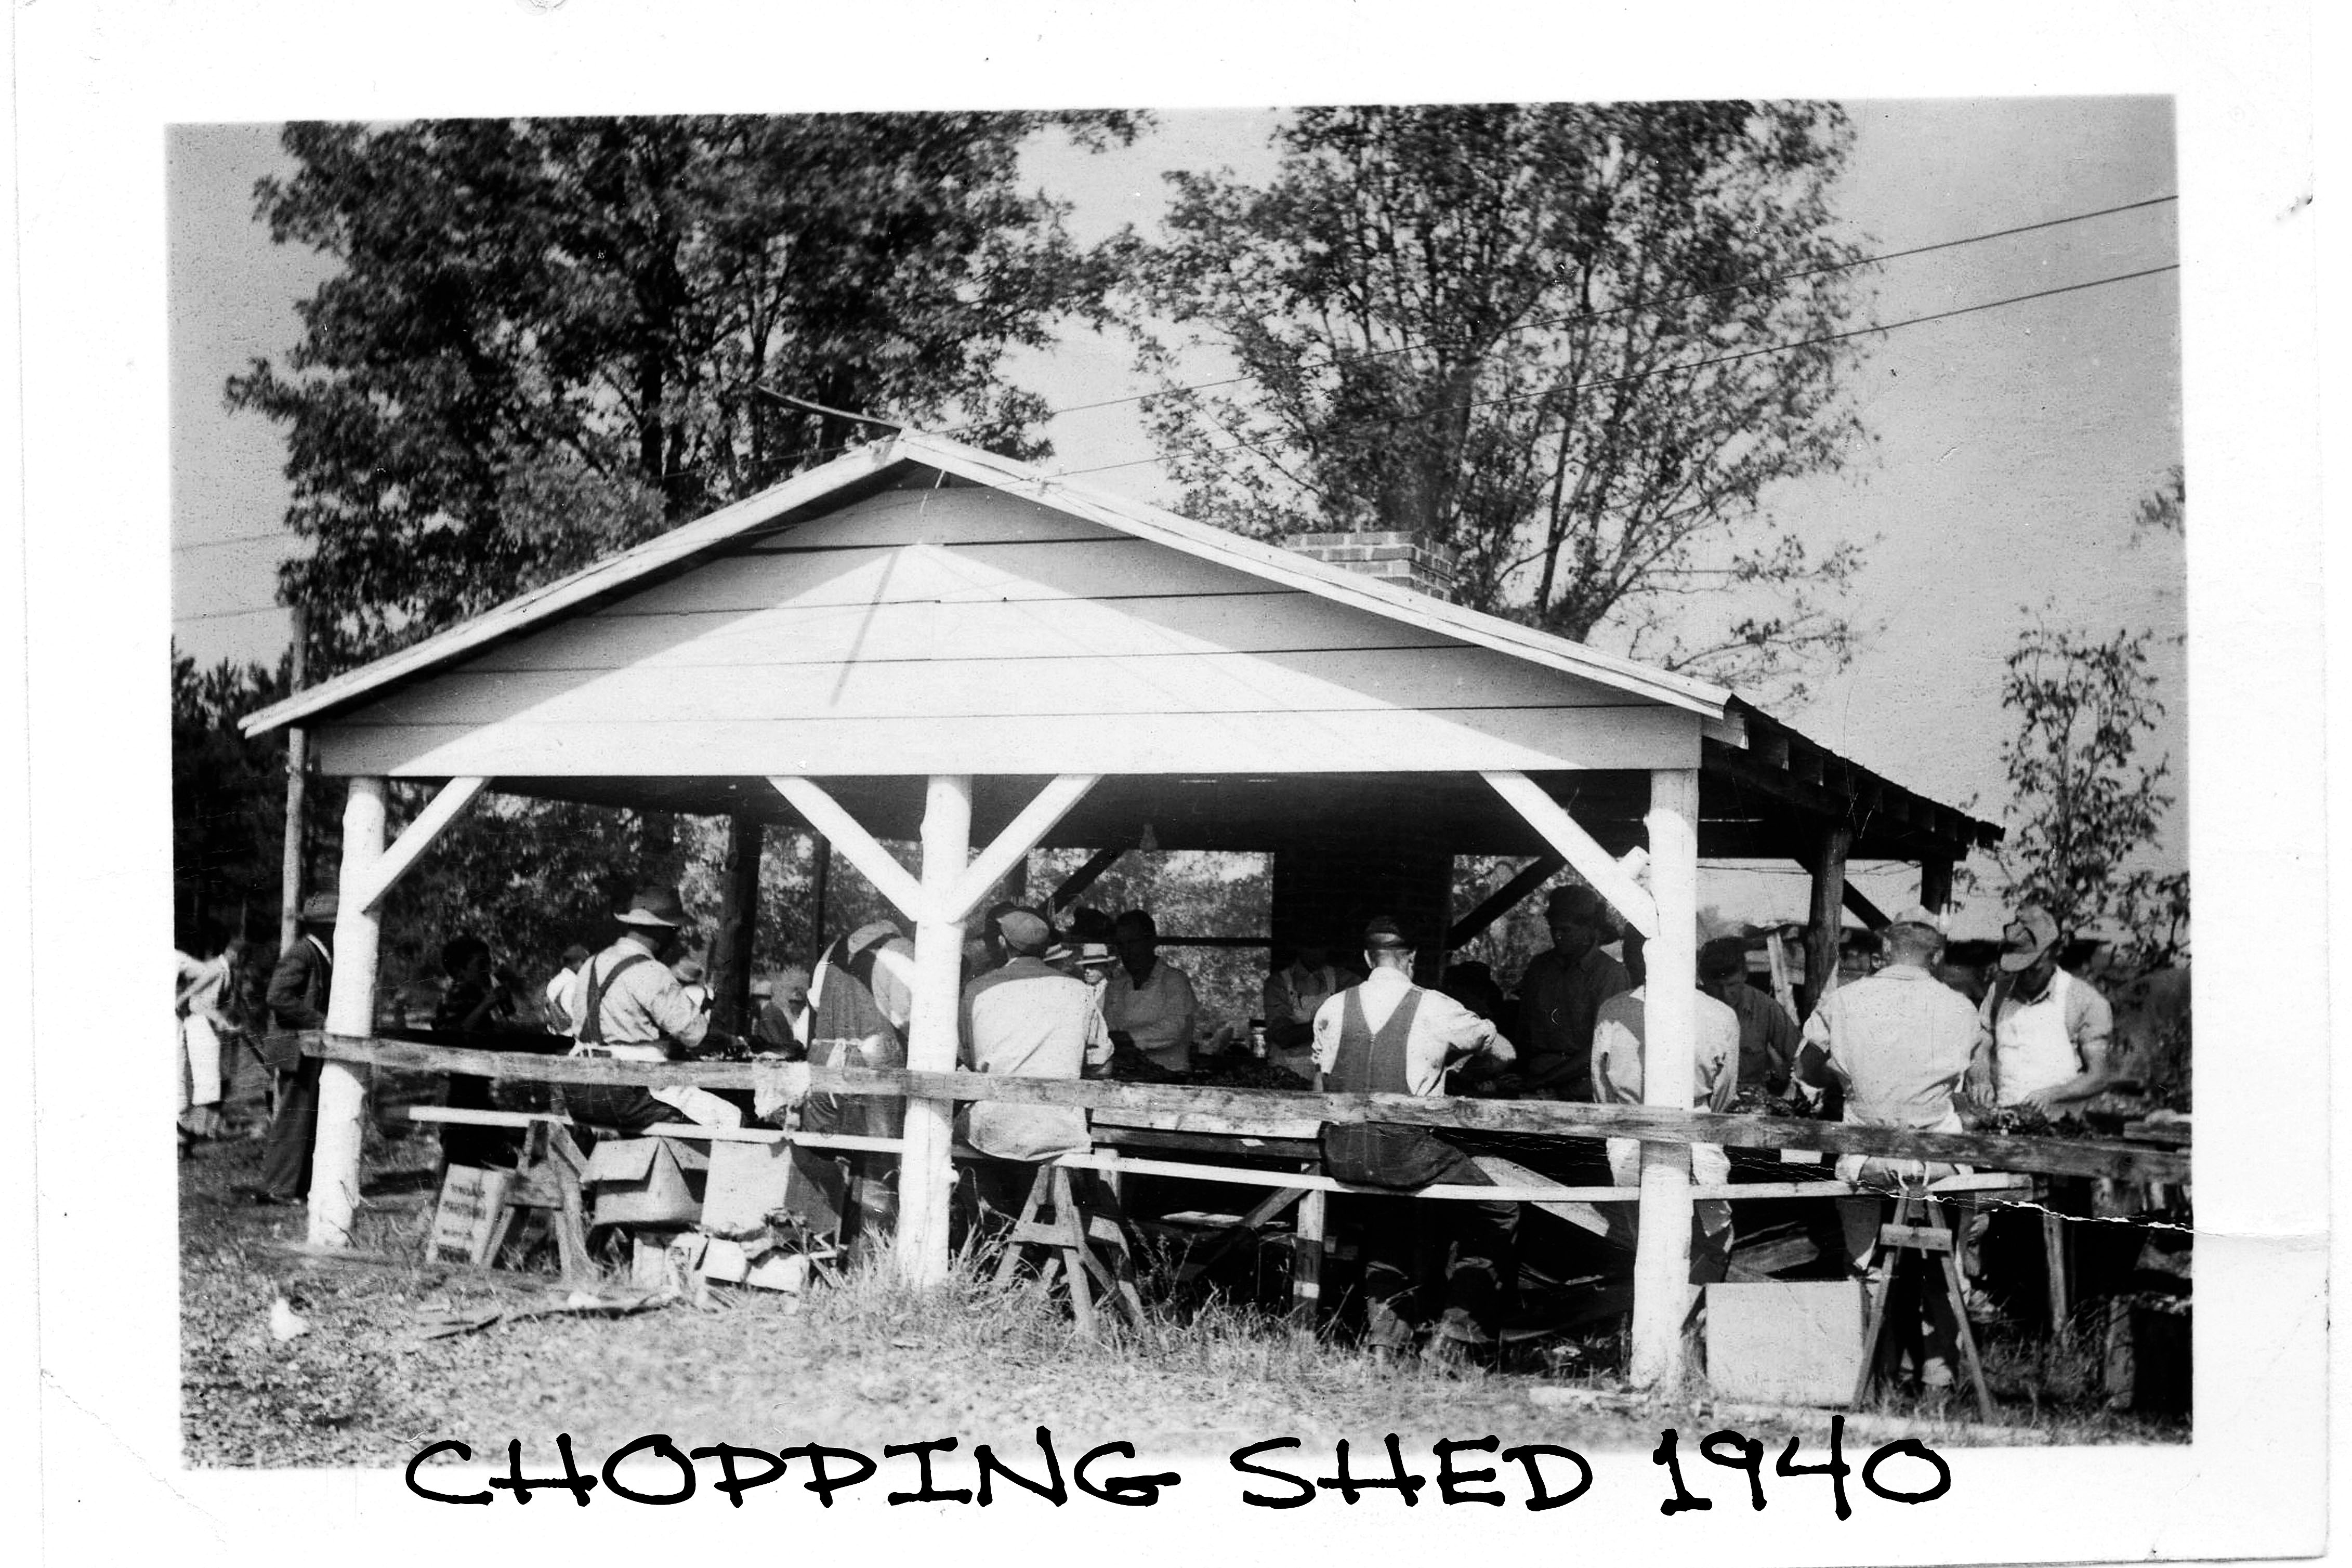 CHOPPING SHED